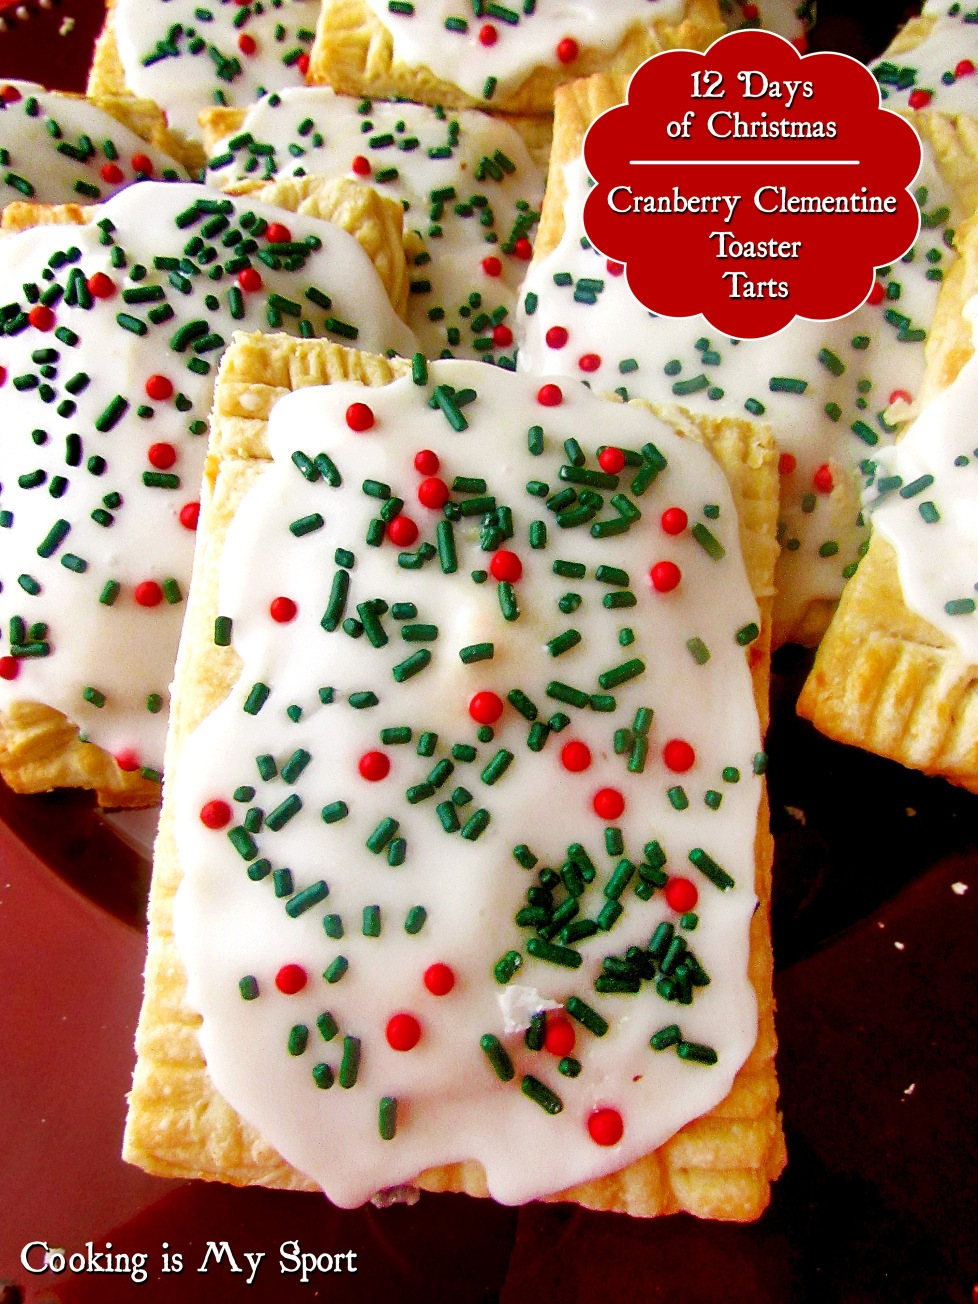 Cranberry Clementine Toaster Tarts4